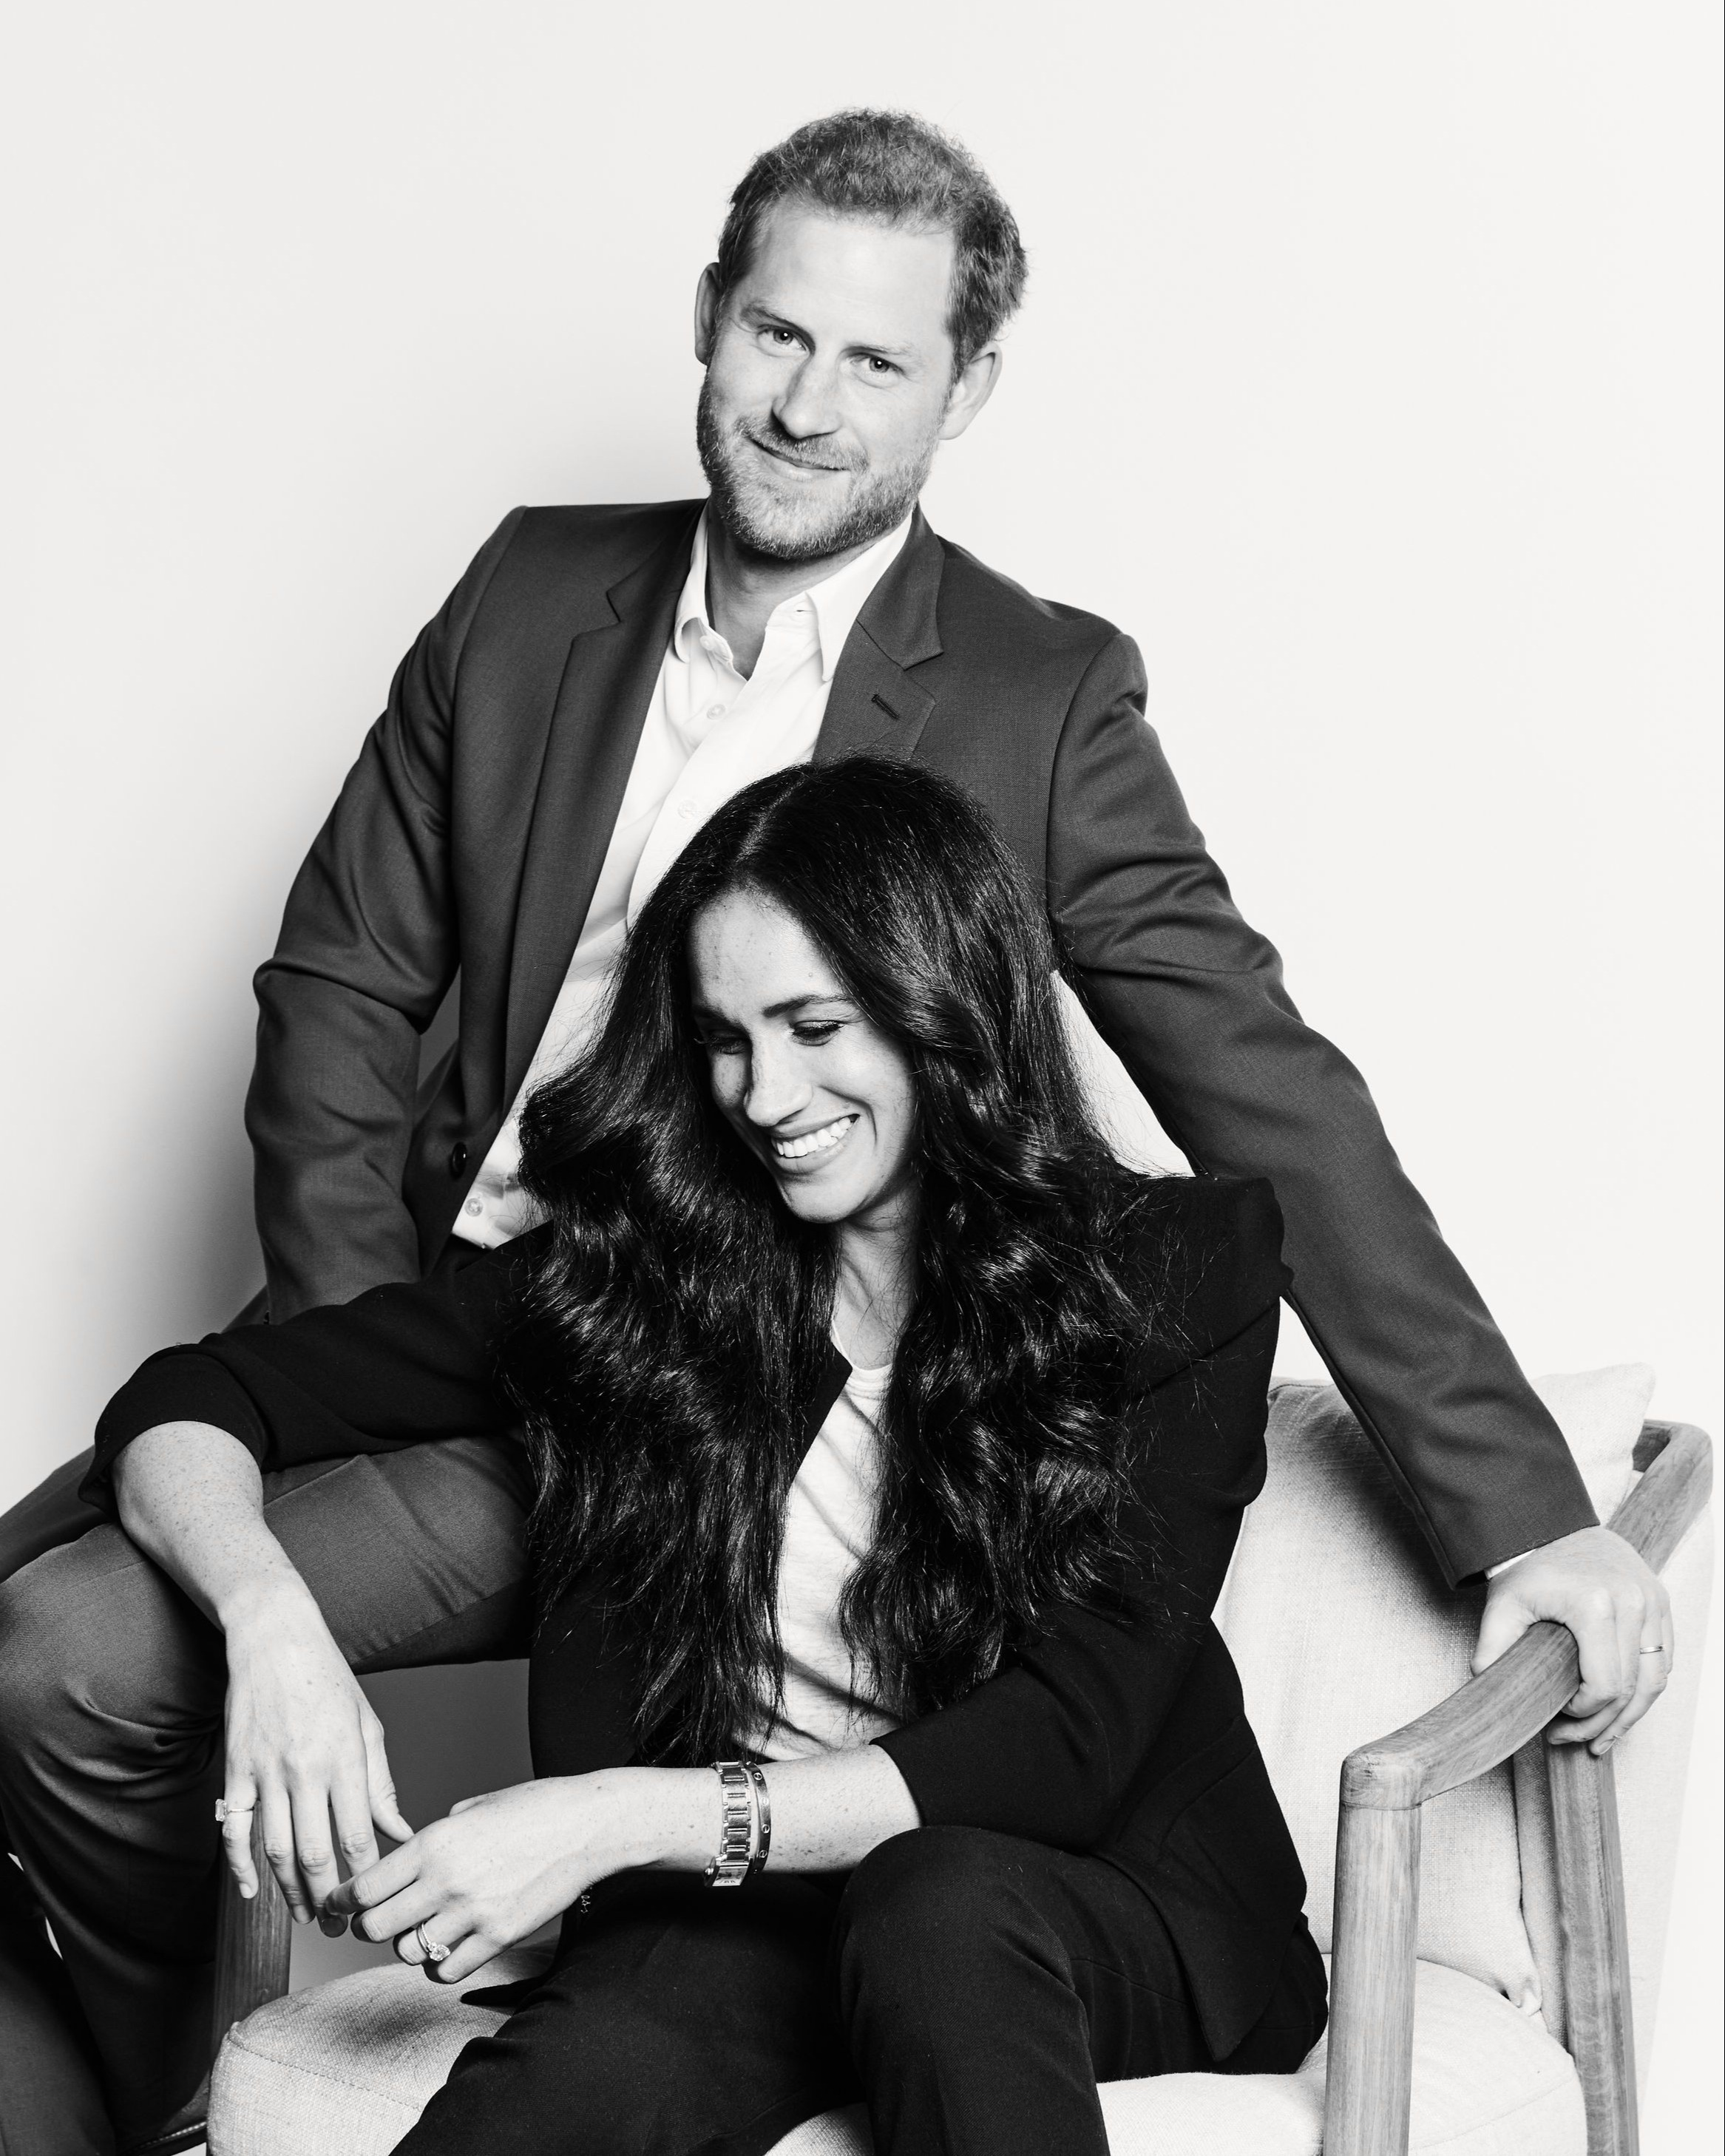 Prince Harry and Meghan Markle to host online talk with celebrity friends on dangers of social media